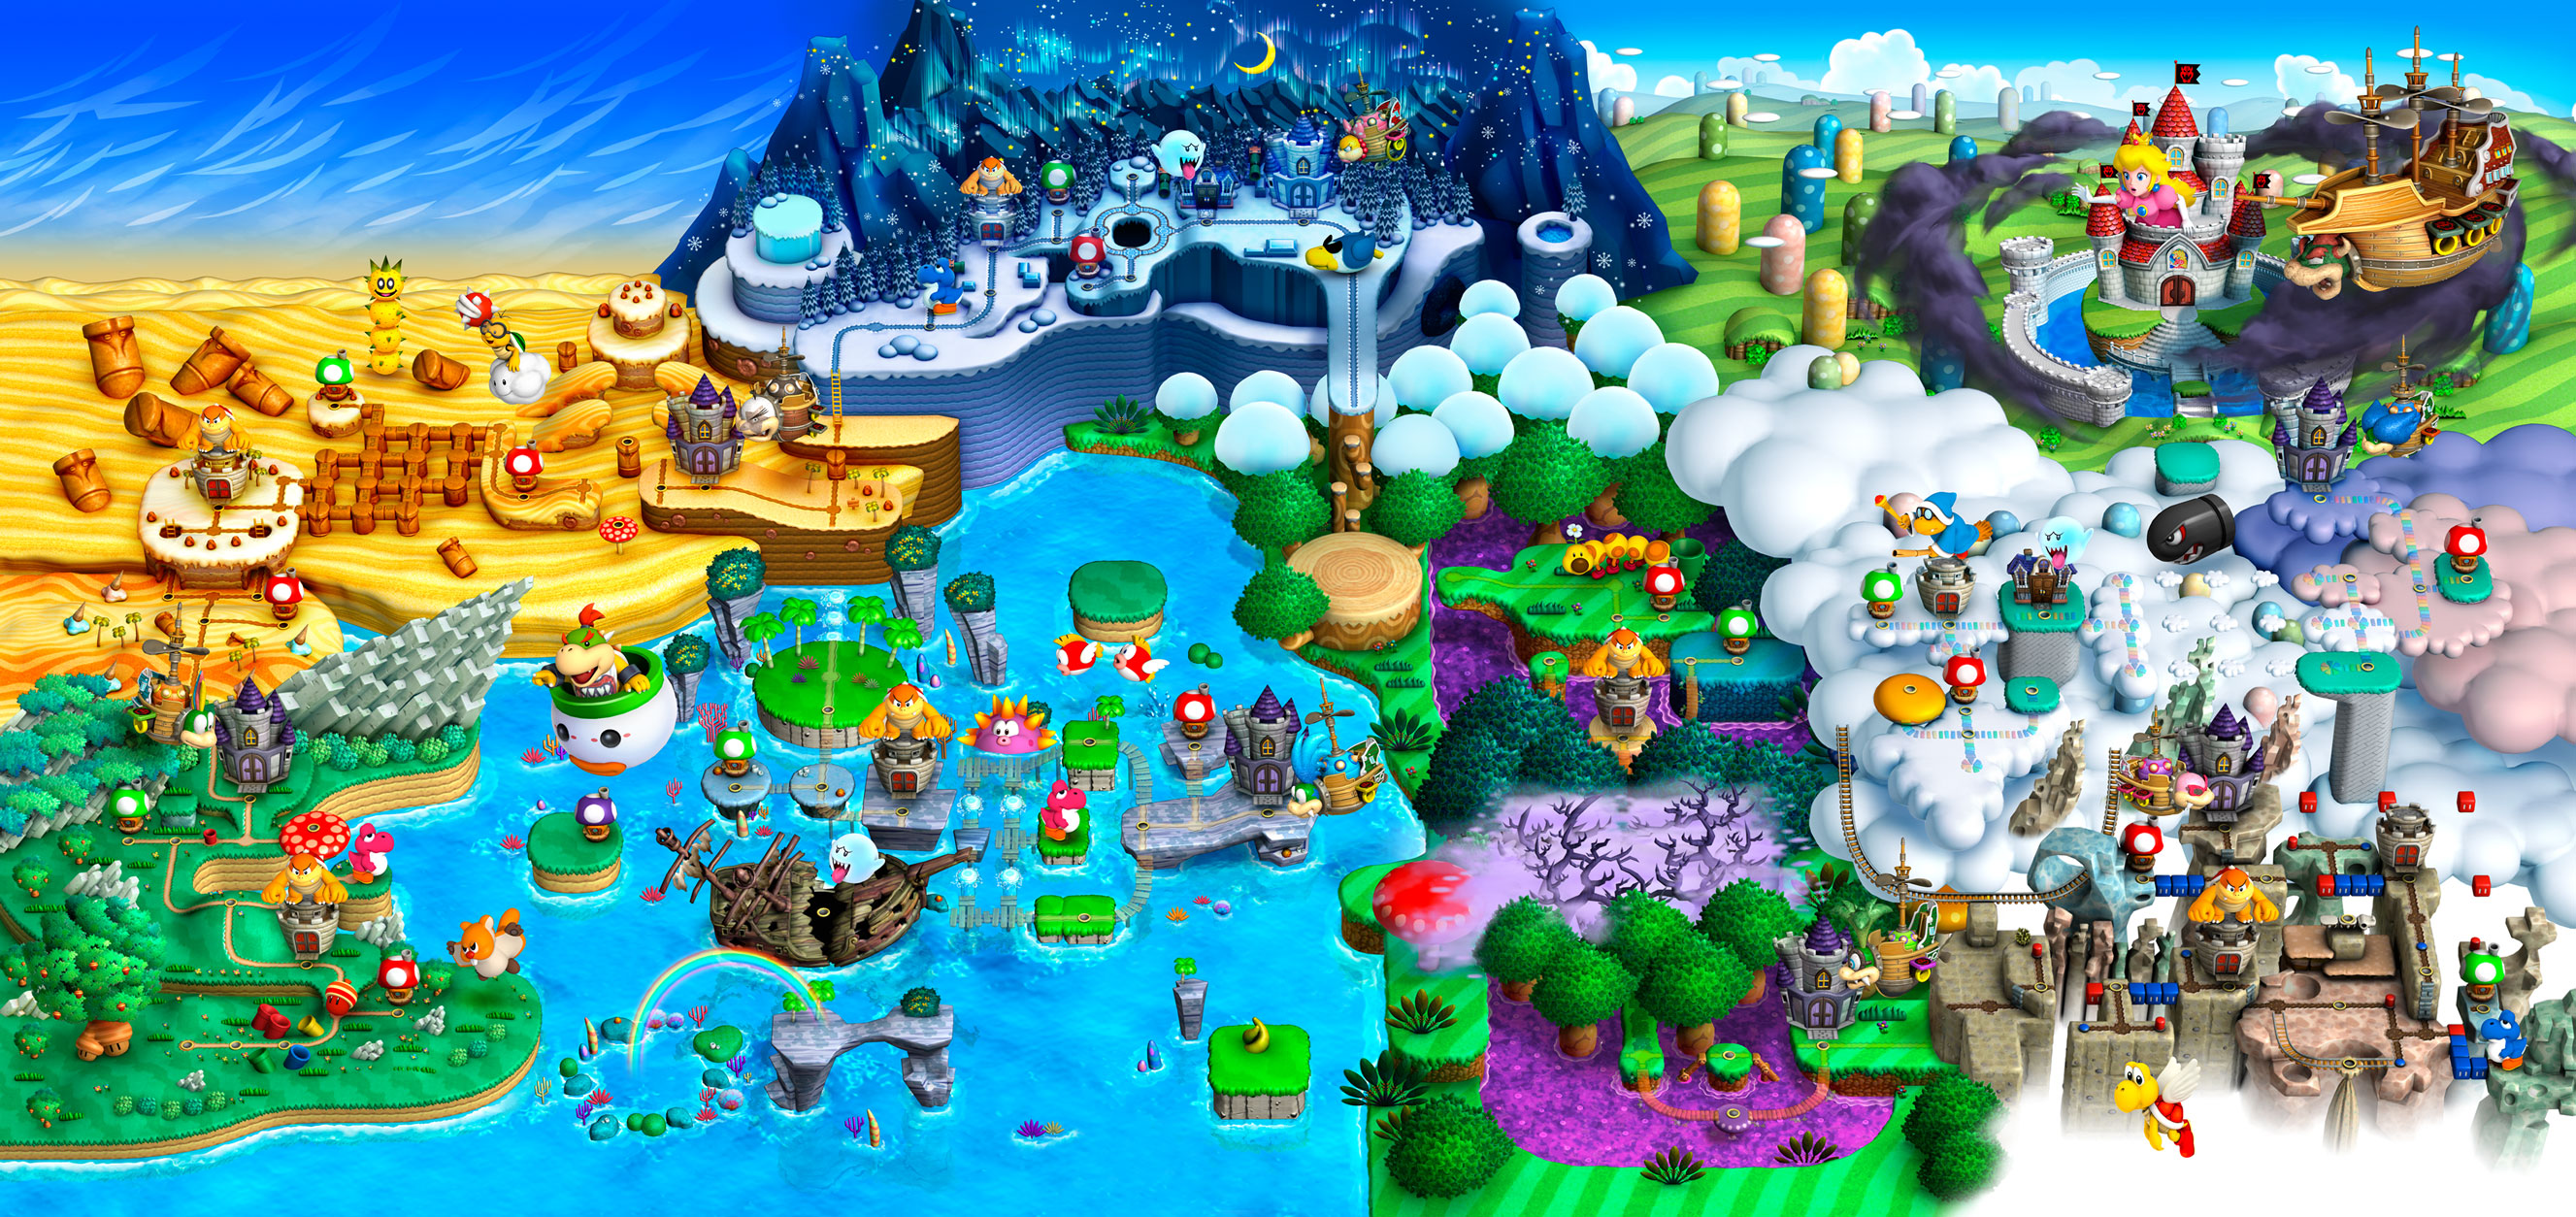 I love this fanart of super mario gaming pinterest fanart new super mario bros overworld this part will be added near the top of the main continent with the different worlds rearranged a bit gumiabroncs Images